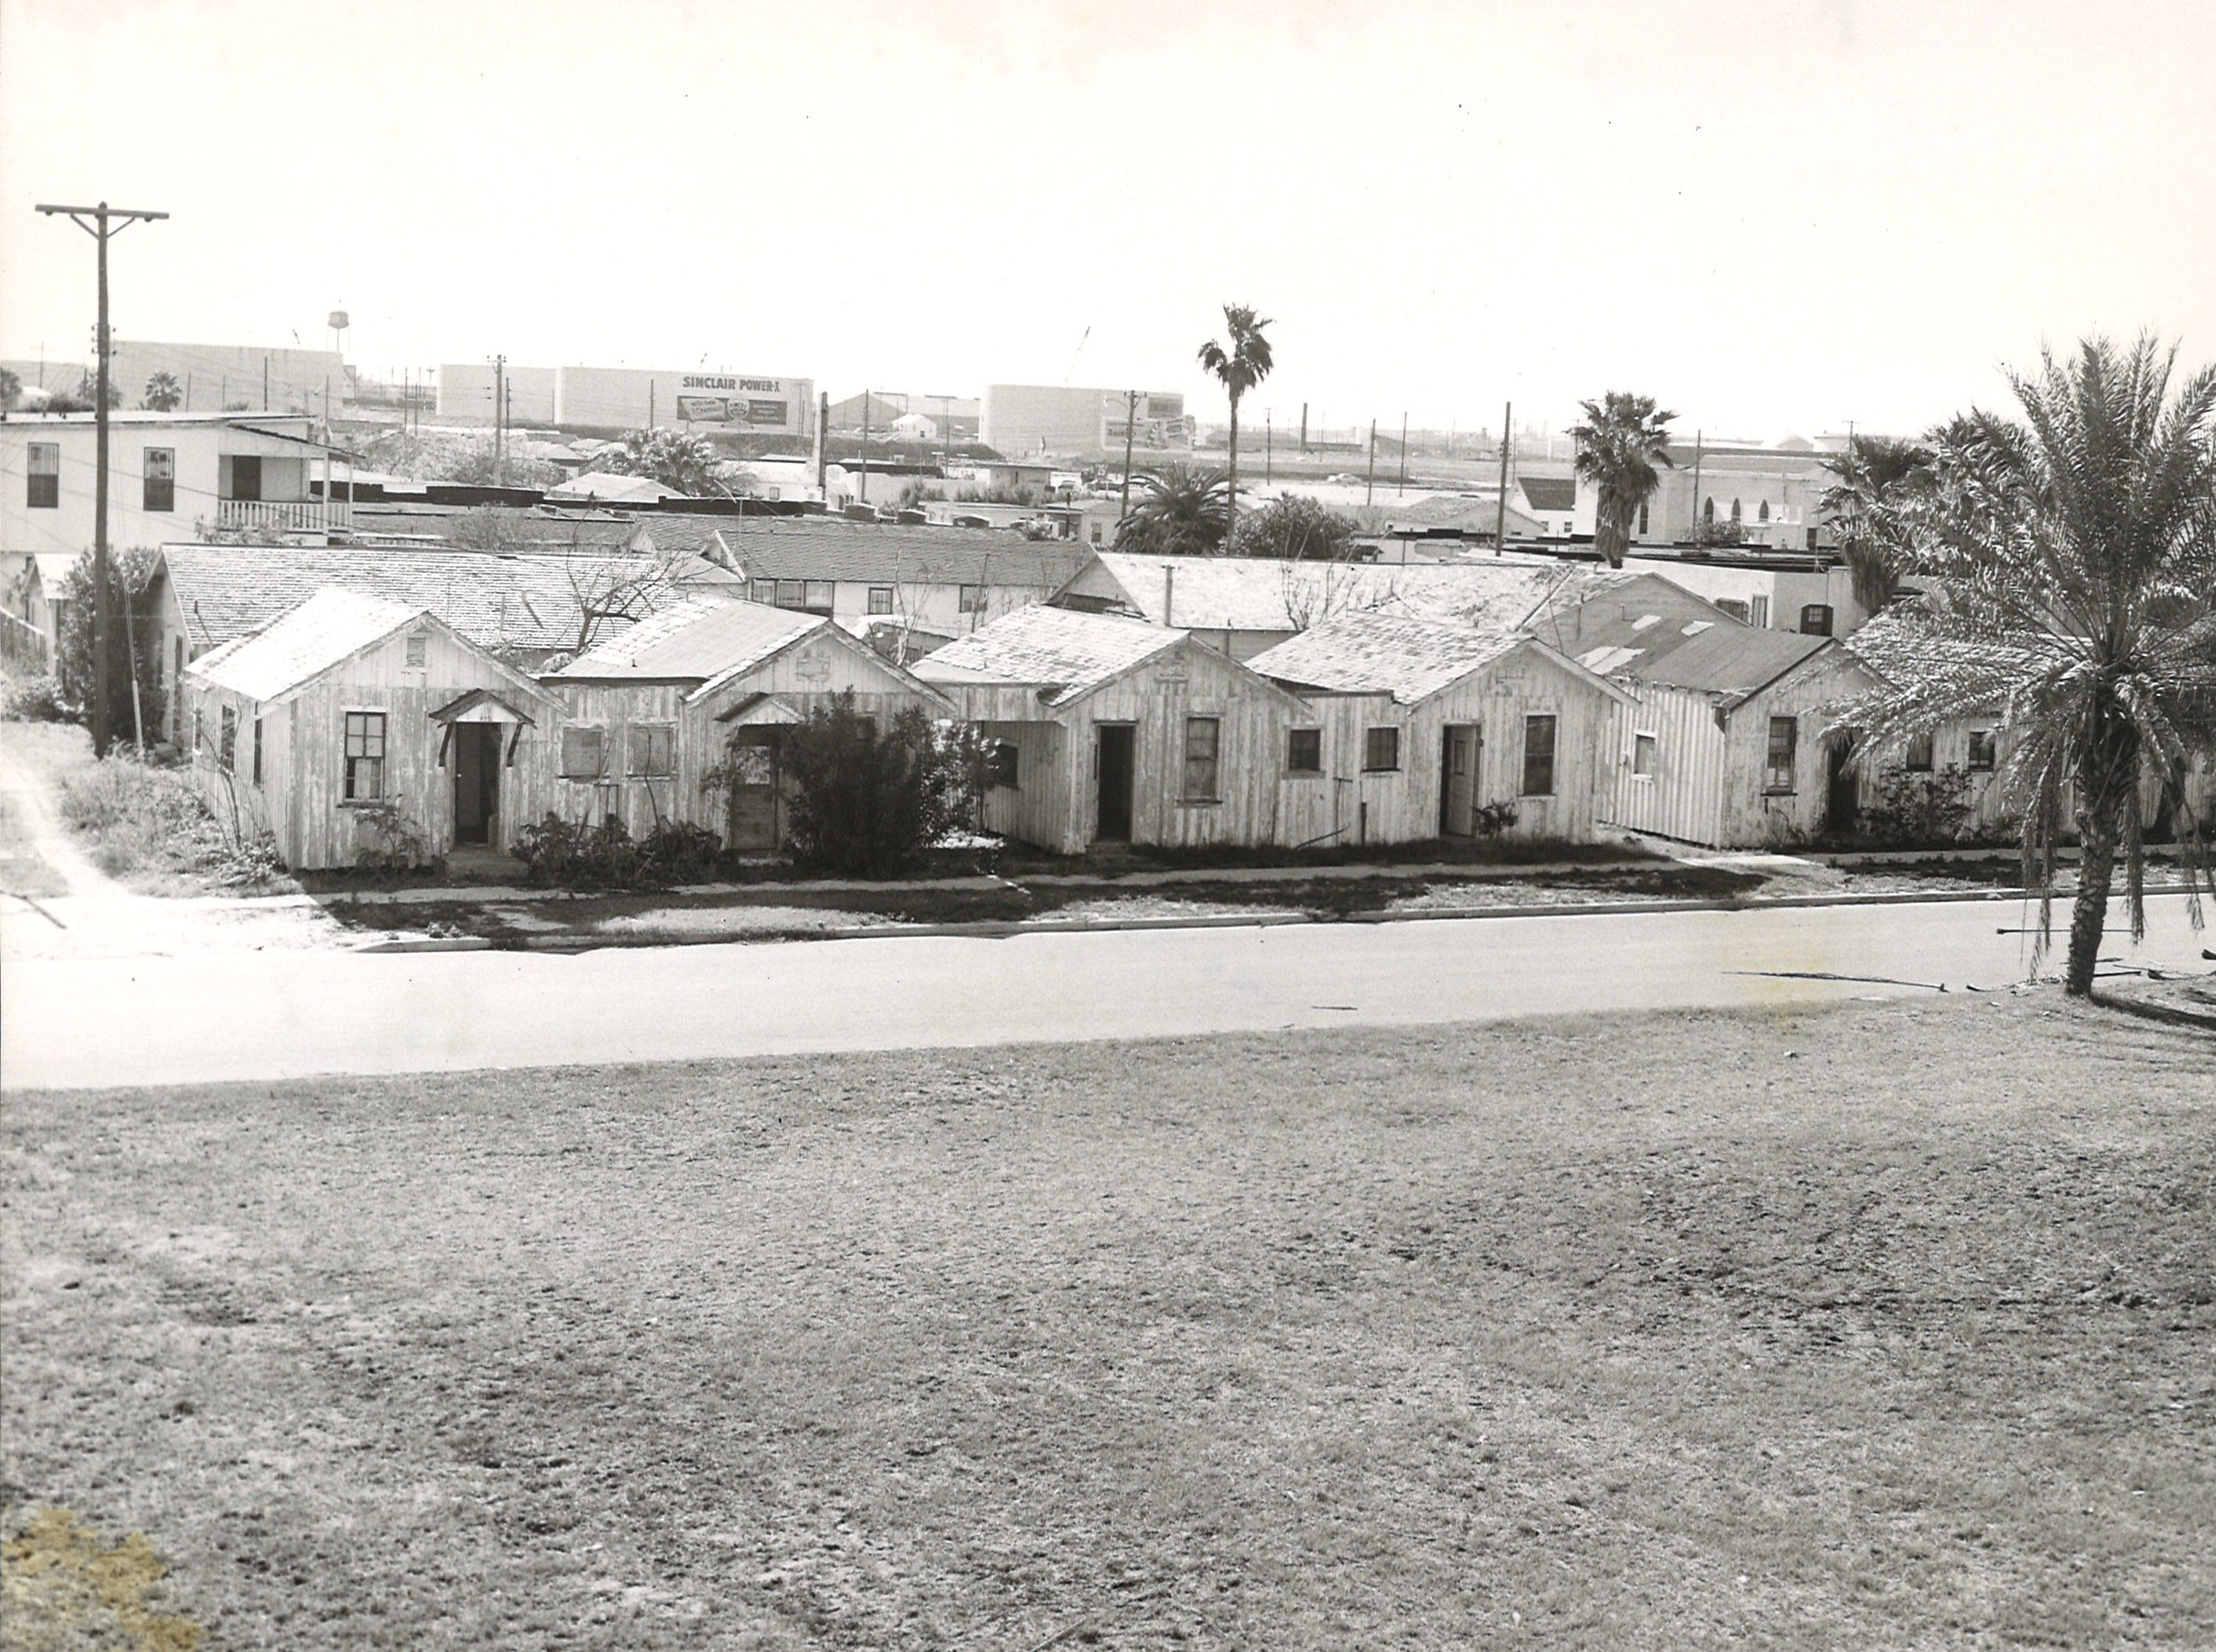 Tourist courts on Corpus Christi's North Beach in January 1959. Storage tanks for the Port of Corpus Christi are seen in the background.